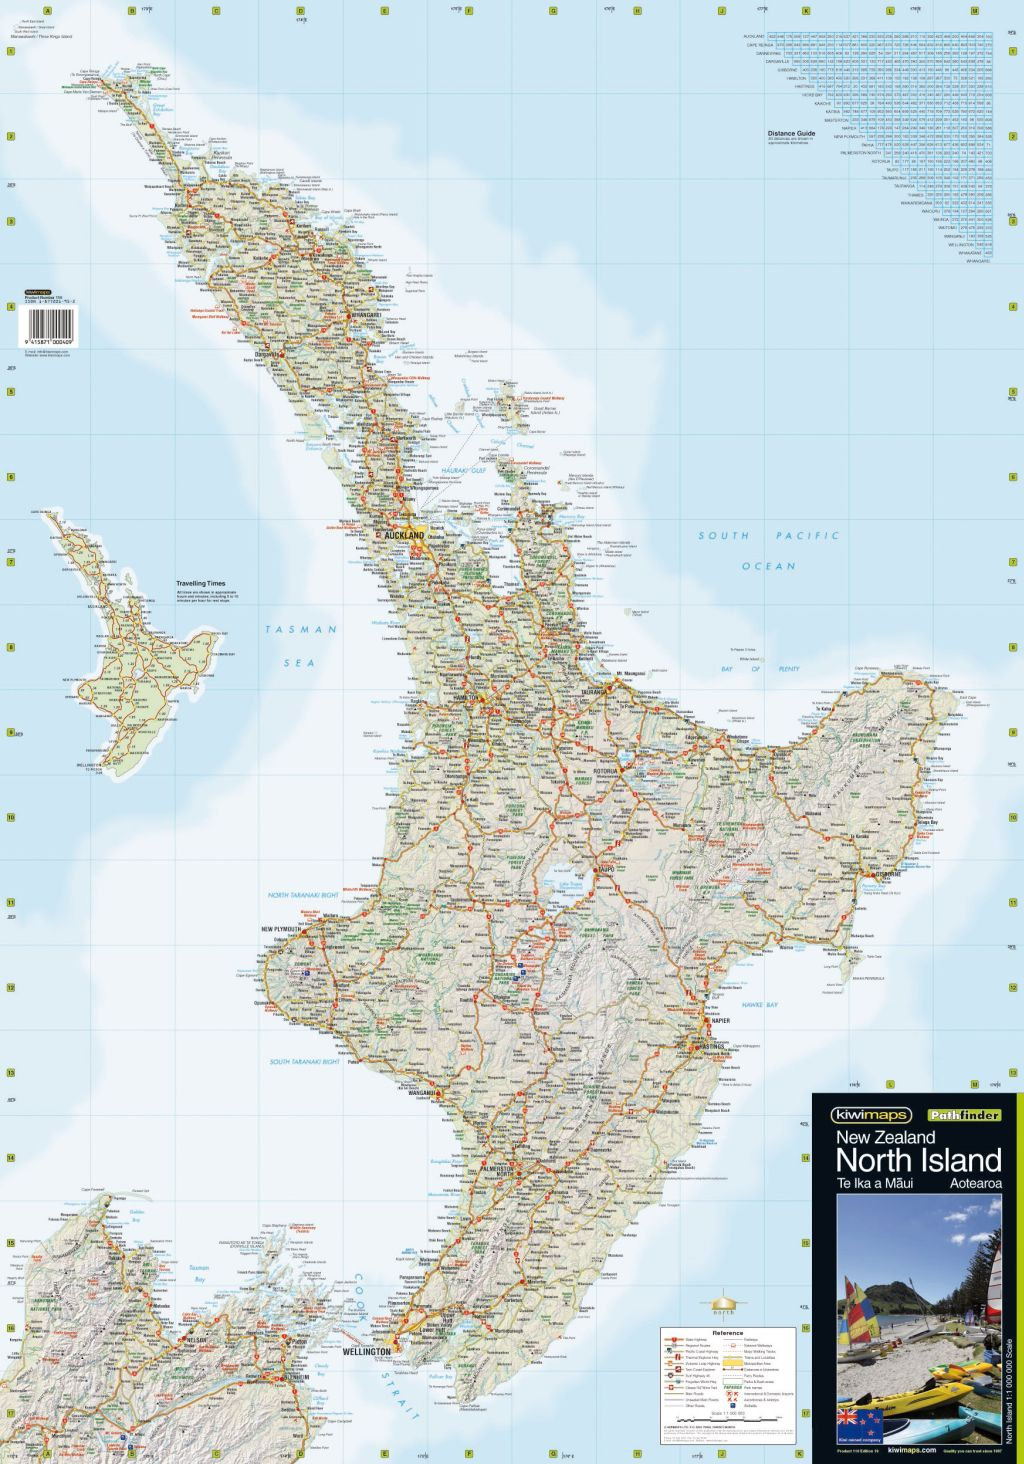 Map Of North Island New Zealand Towns.North Island Kiwi Map